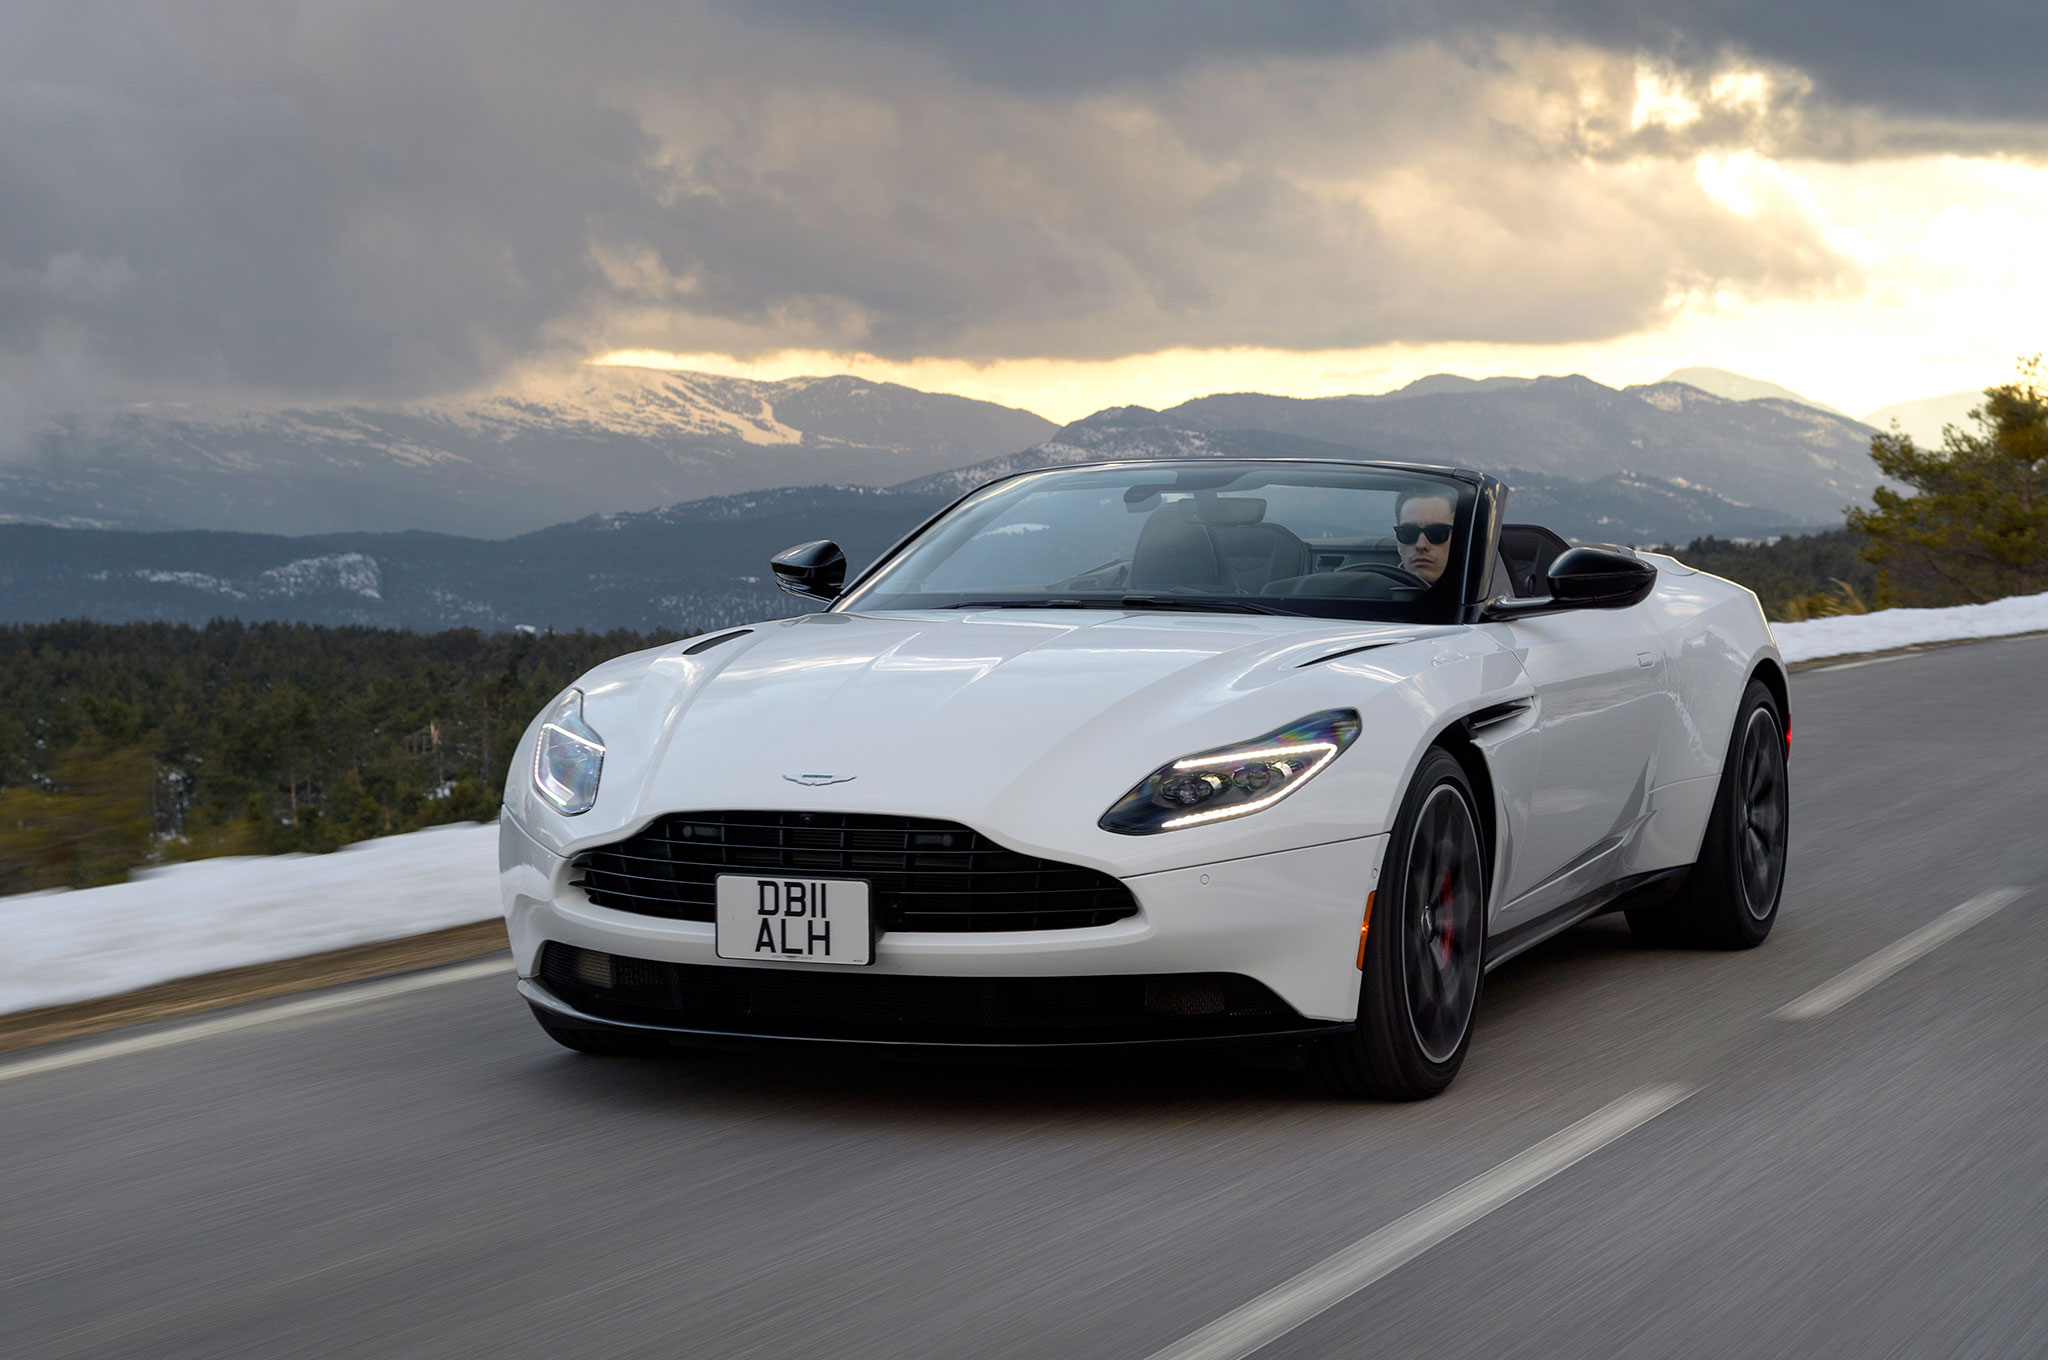 2019 Aston Martin DB11 Volante Front Side Motion View Cloudy